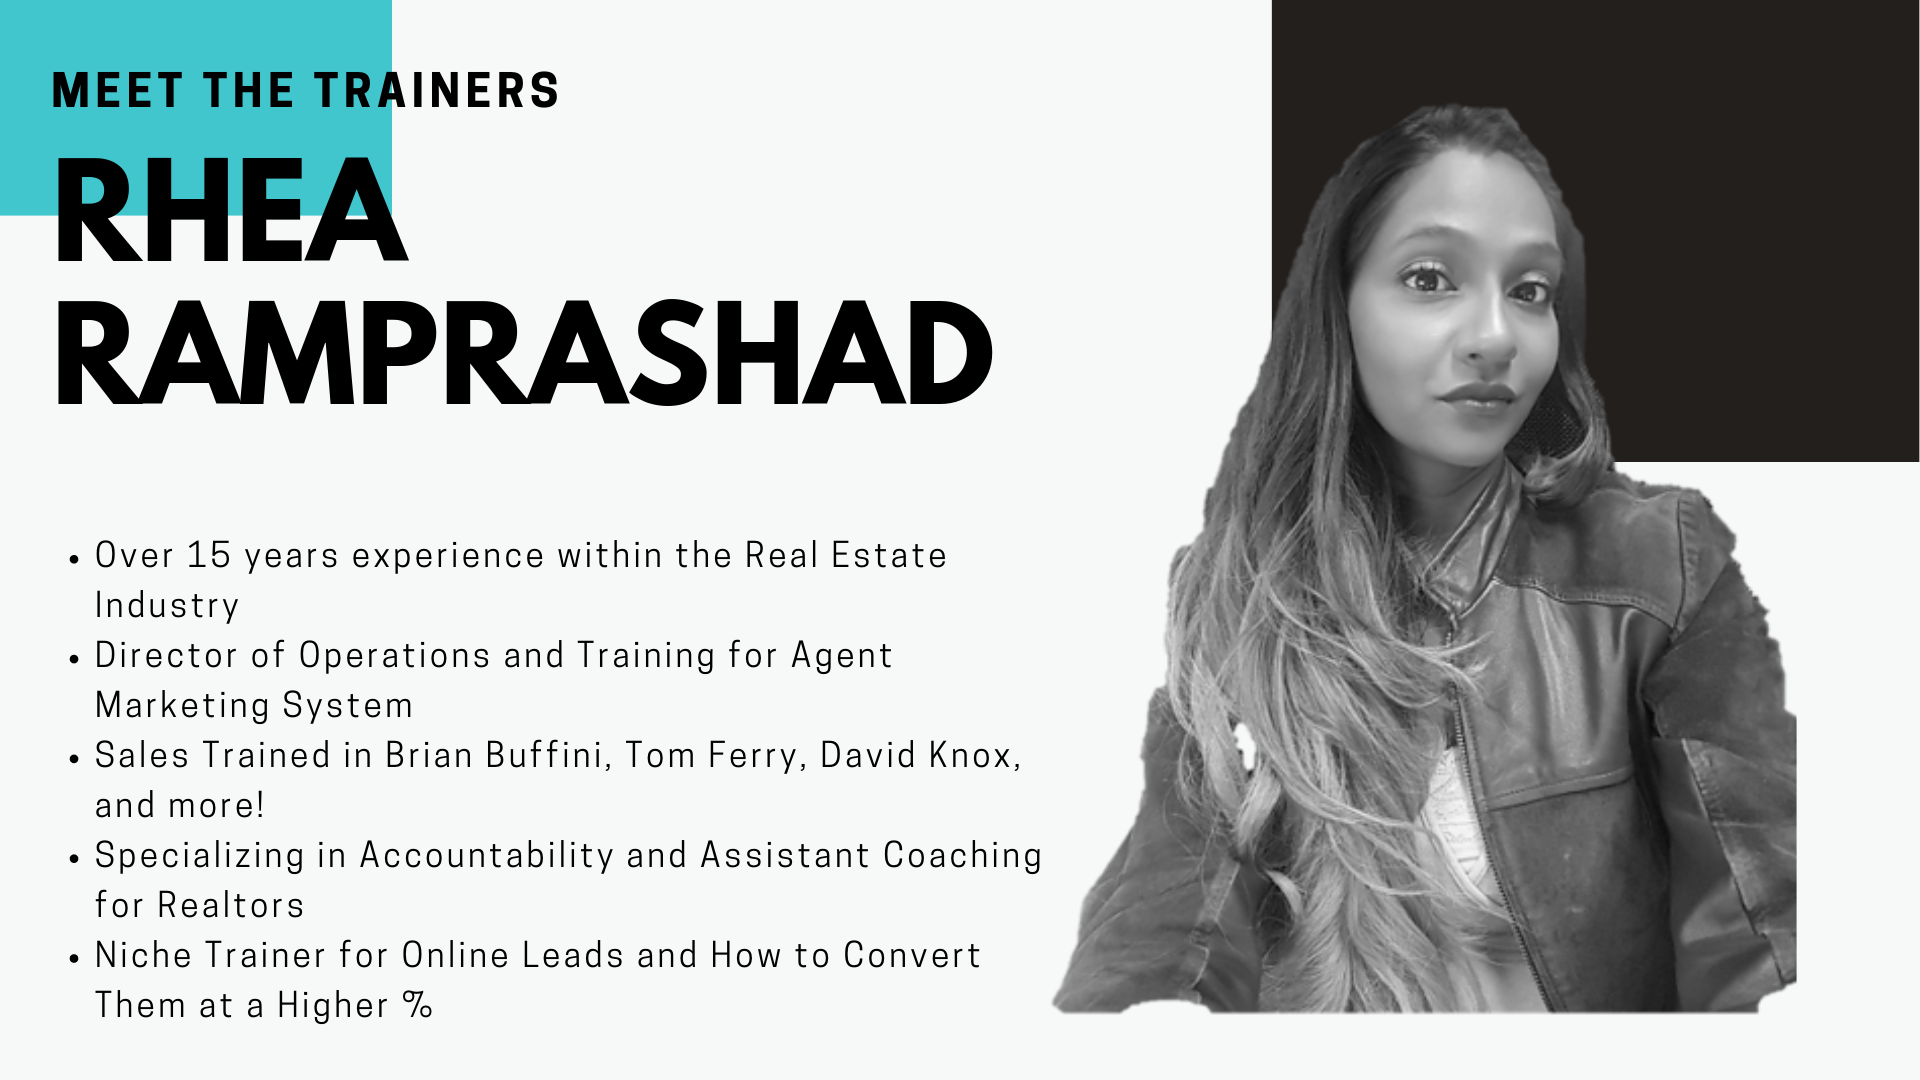 Rhea Ramprashad - Meet the Trainers